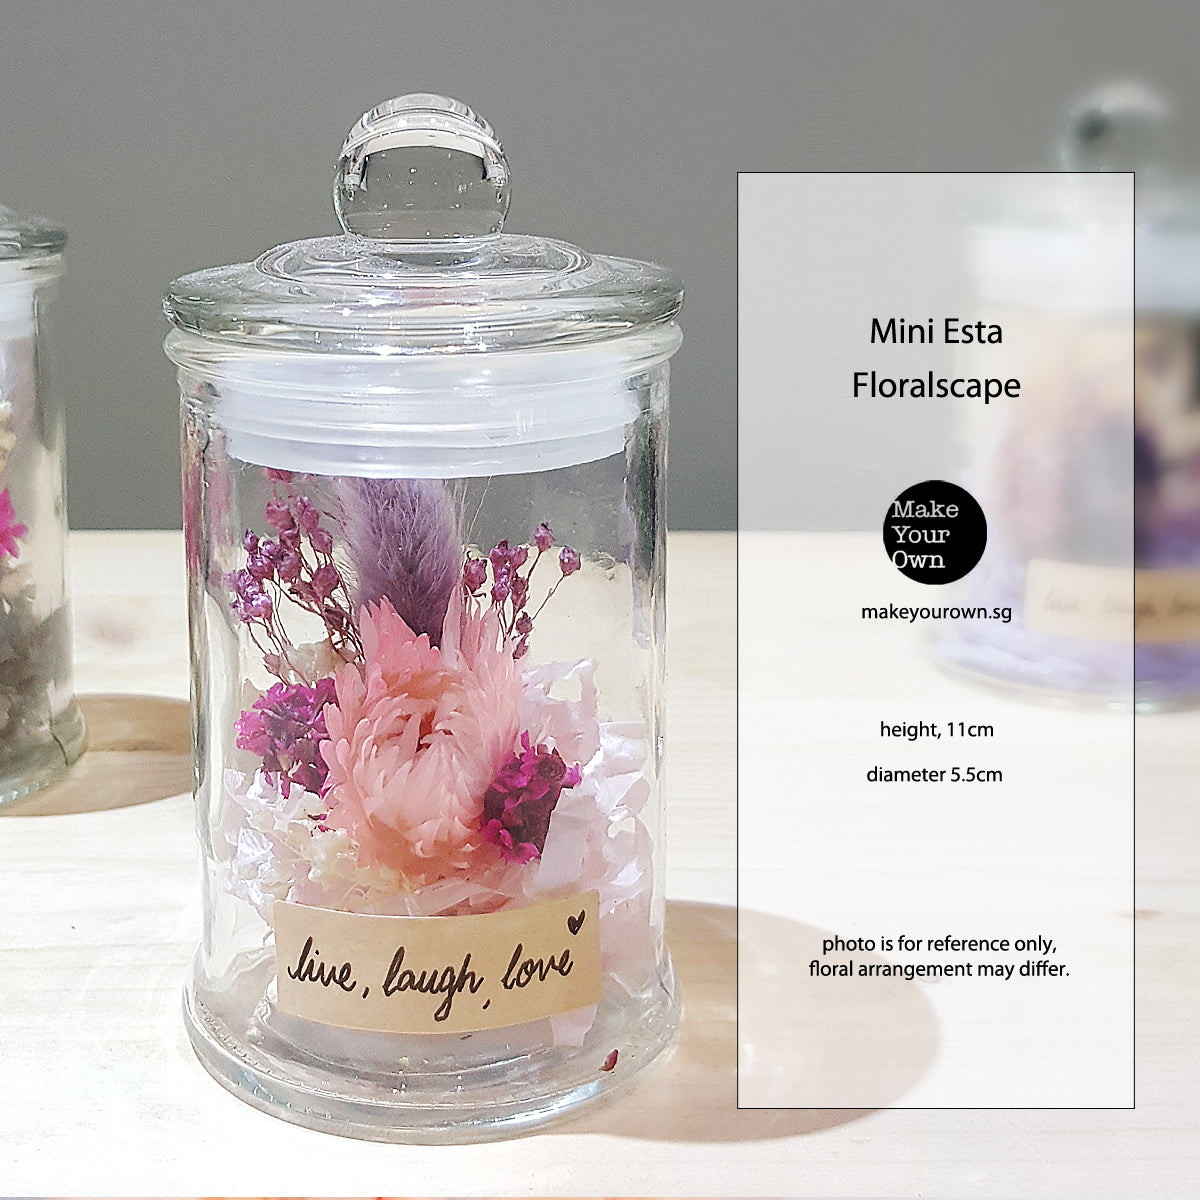 Virtual Event DIY kits - Mini Esta Floralscape